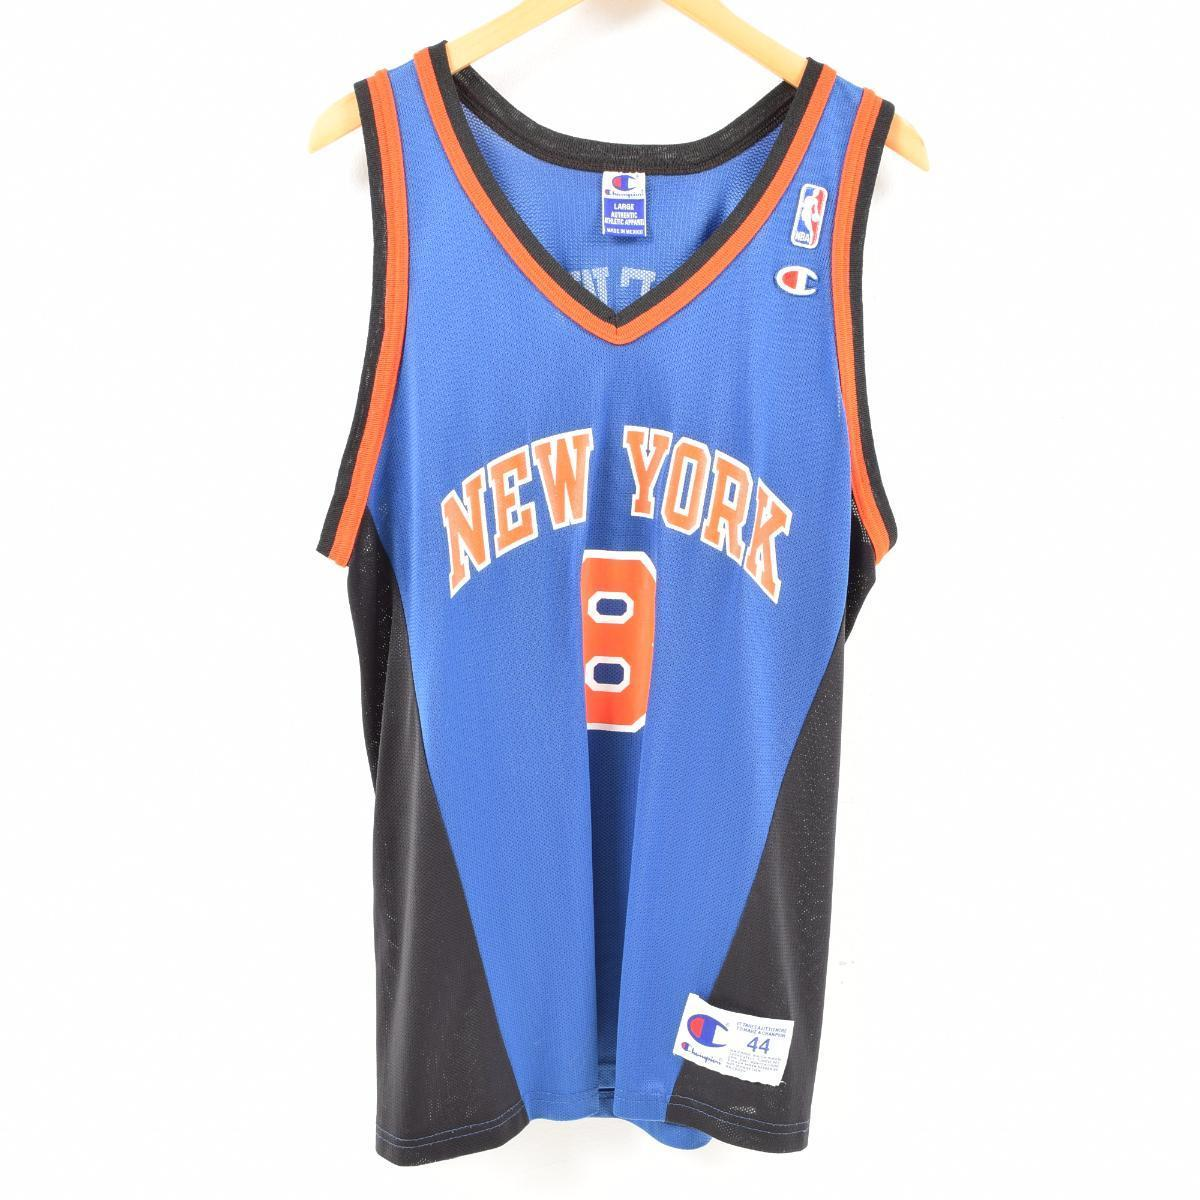 90s champion Champion NBA NEWYORK KNICKS New York Knicks LATRELL SPREWELL  game shirt replica uniform men L  wam9903 c8d0a527b